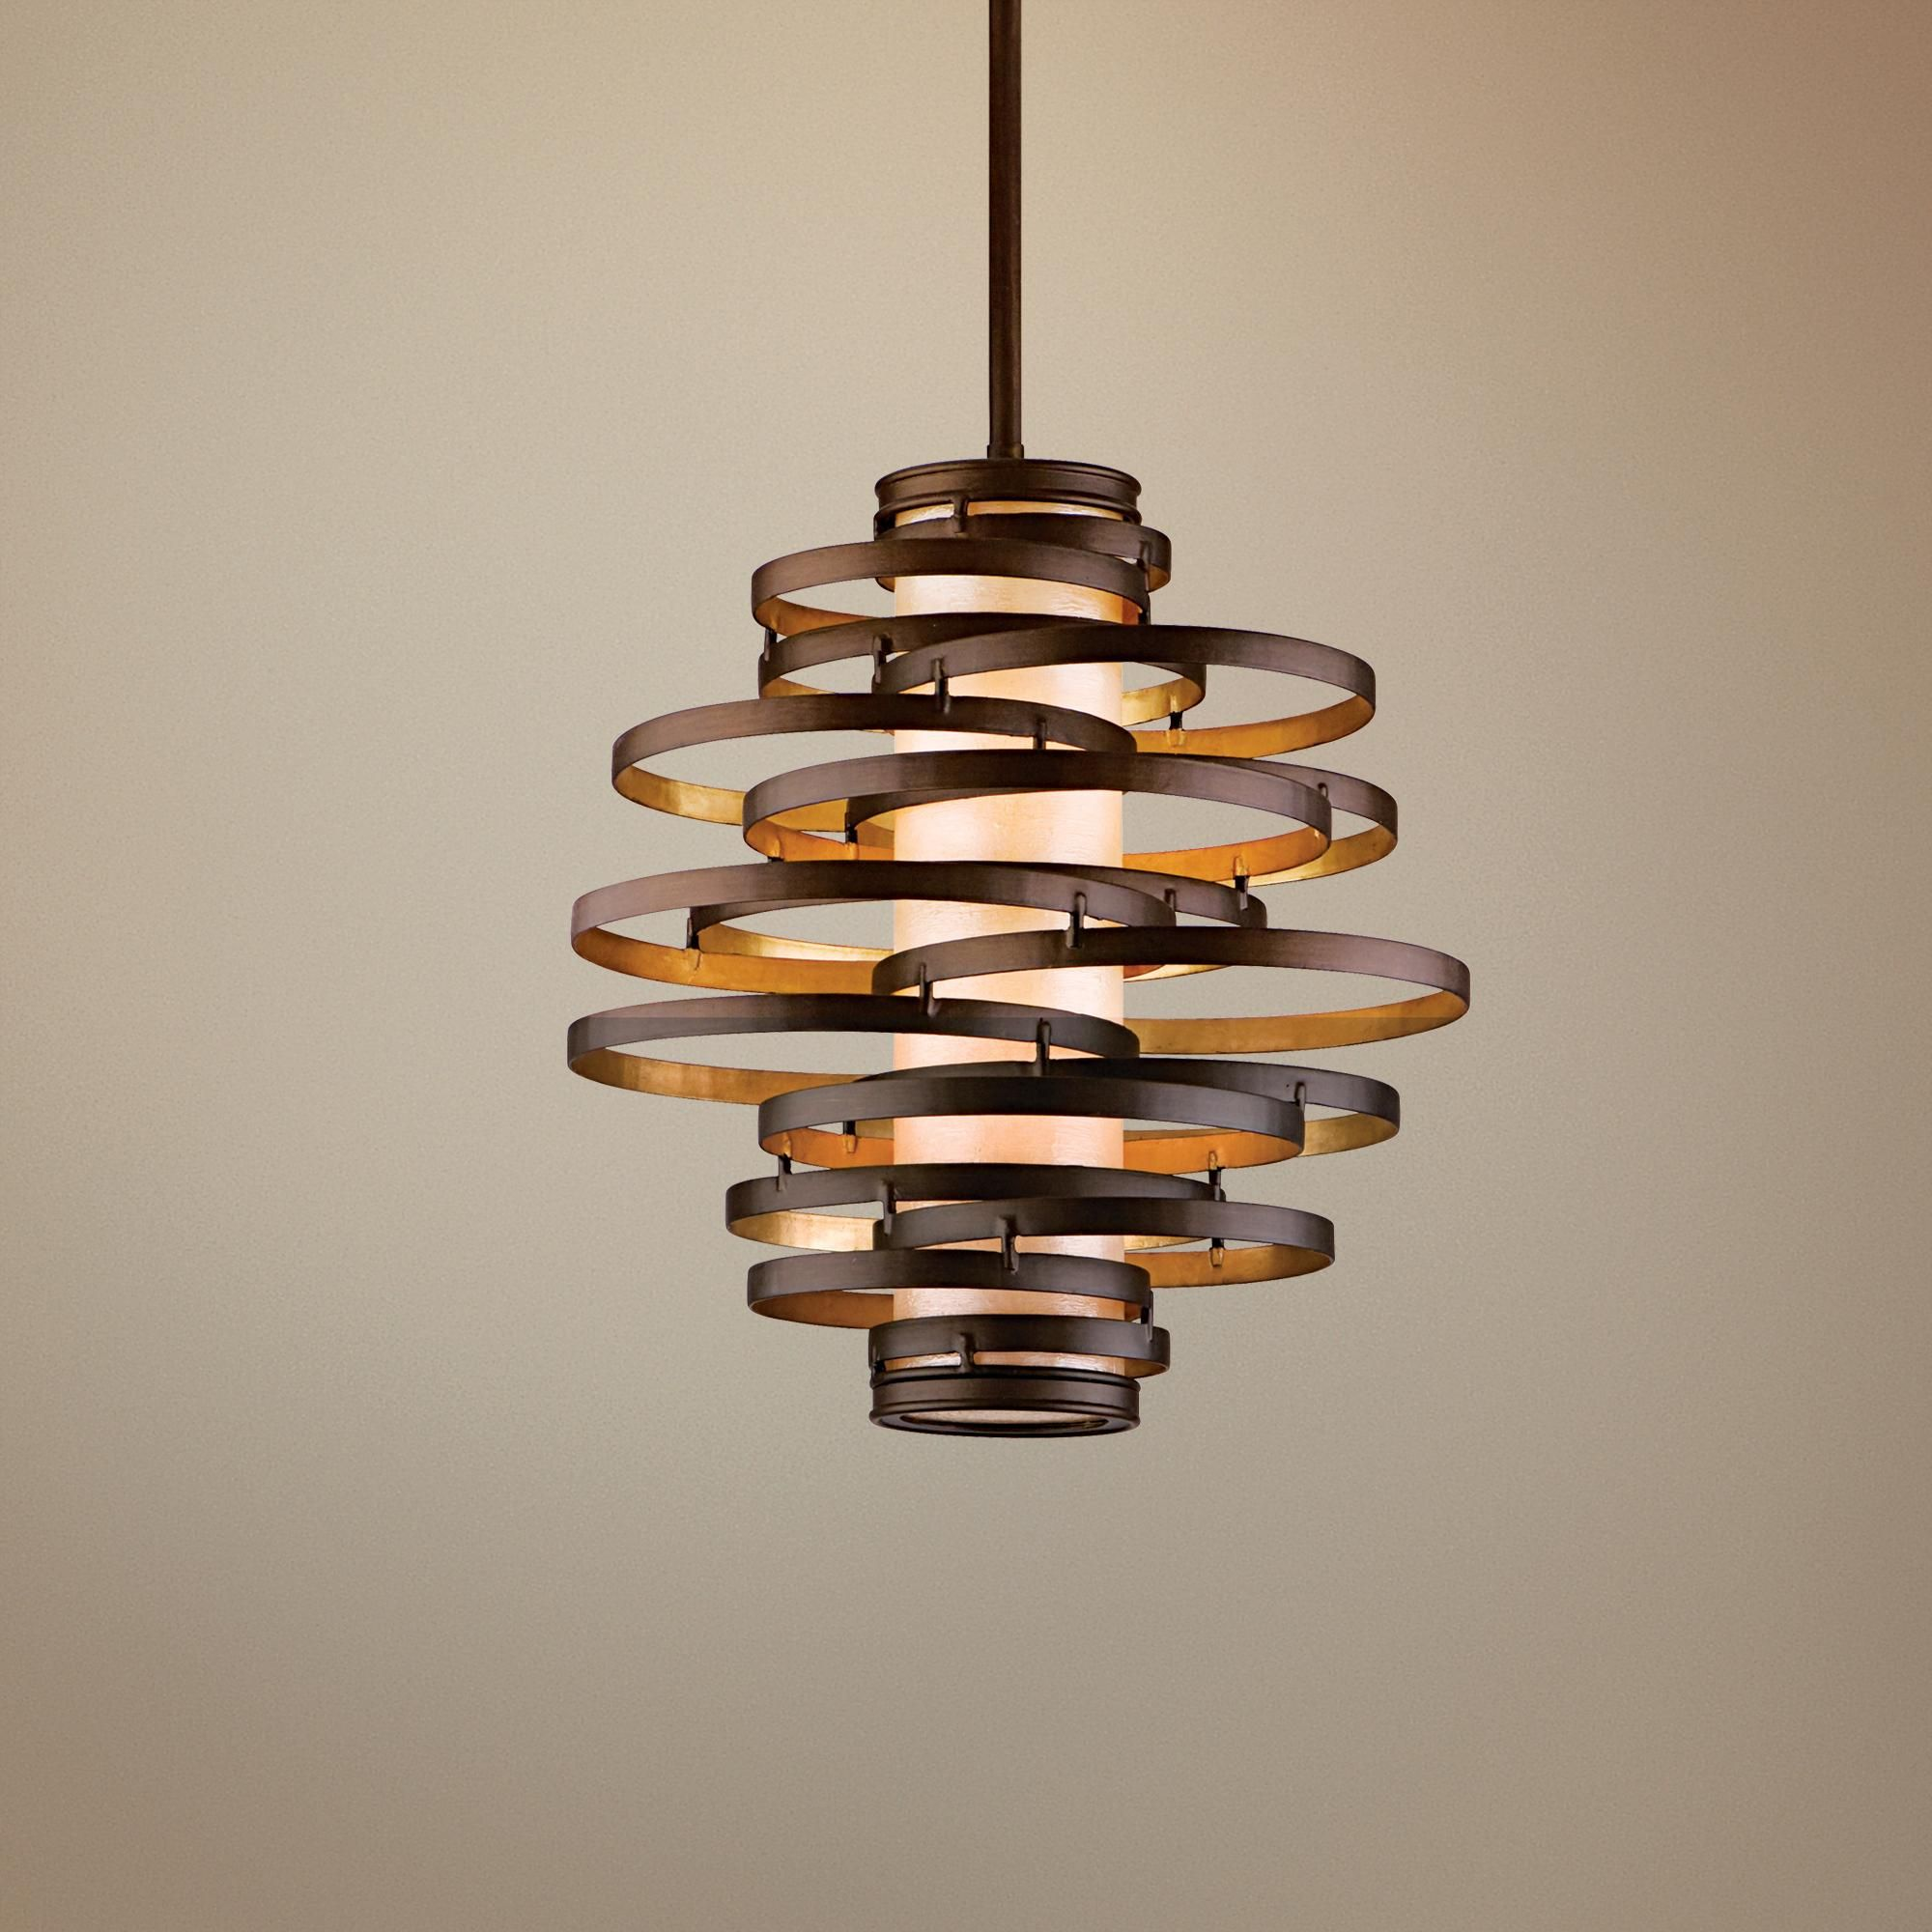 black gantvertigo pendant elegantvertigo l petite suspension of by style friture cm vertigo small